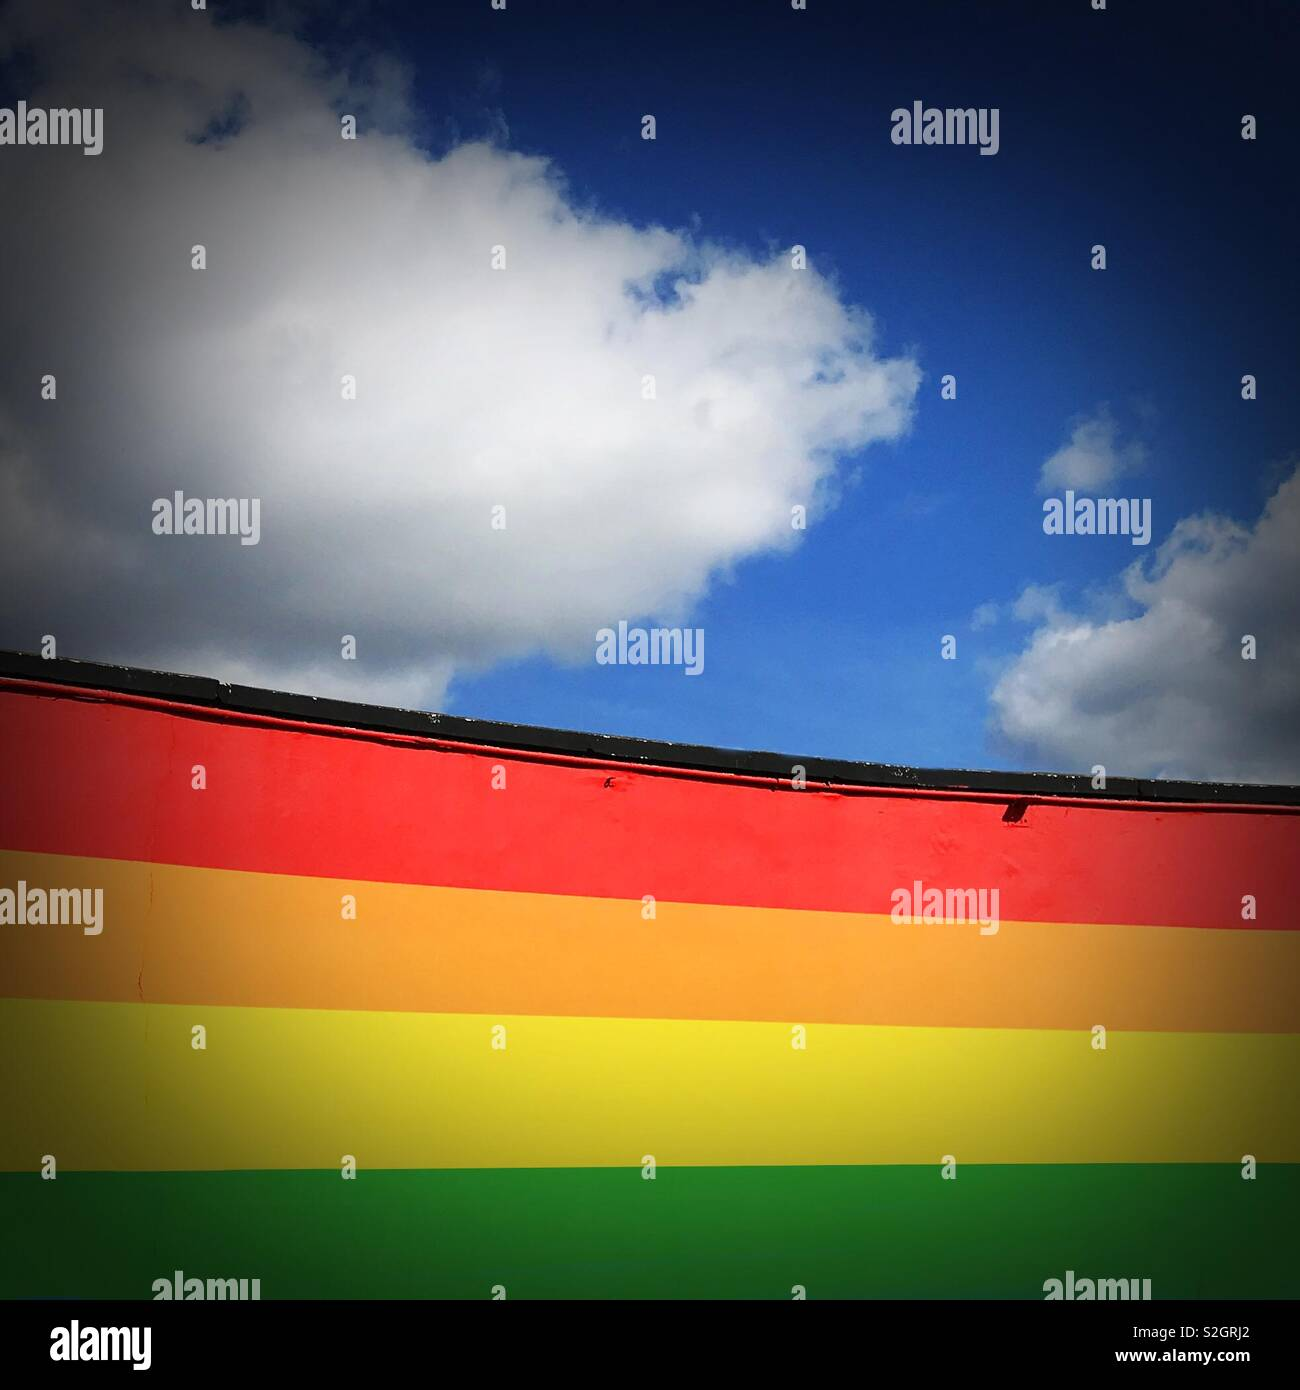 Wall painted in rainbow colors against a blue sky with white clouds - Stock Image